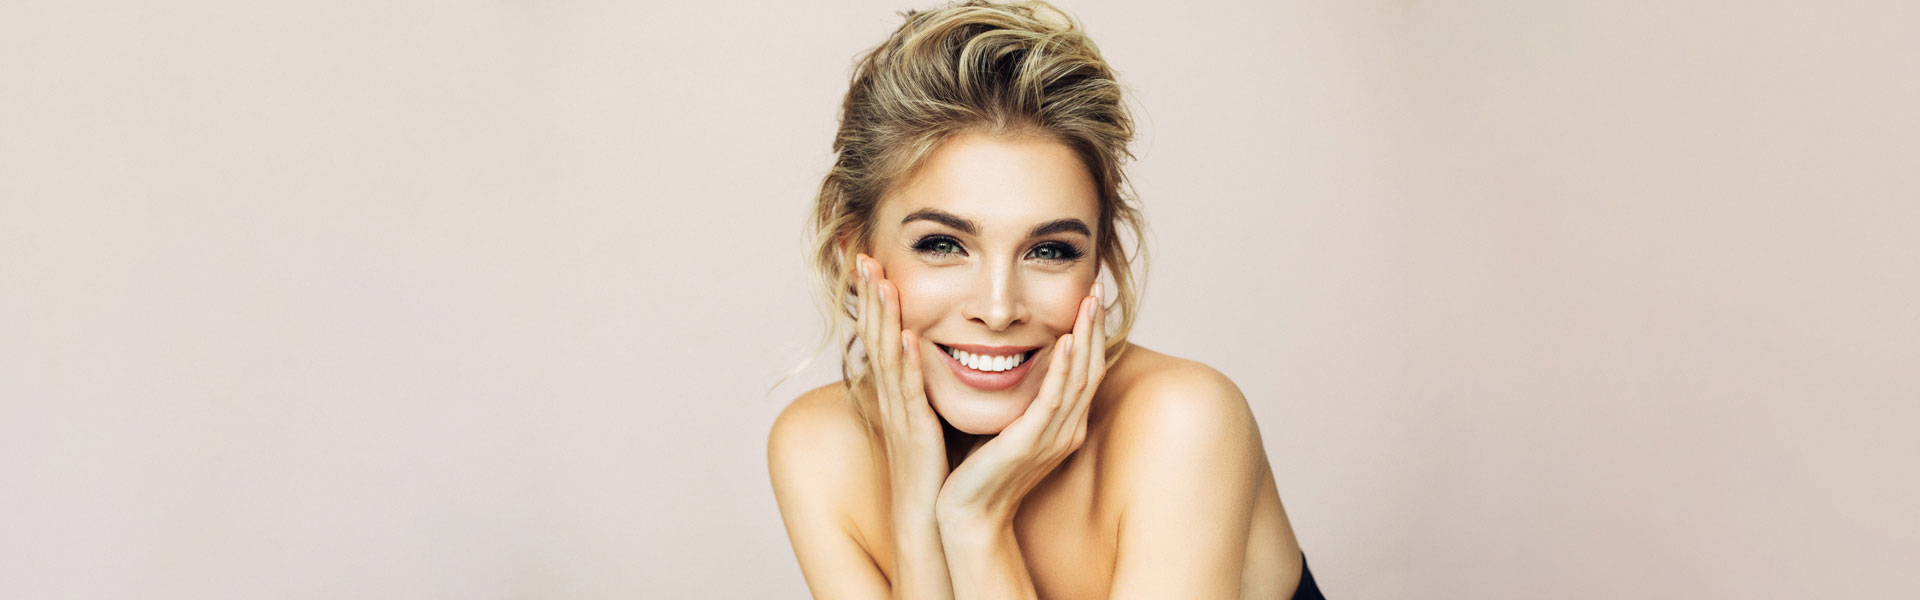 Ultimate Guide To Getting A Complete Smile Makeover Through A Full Mouth Rehabilitation